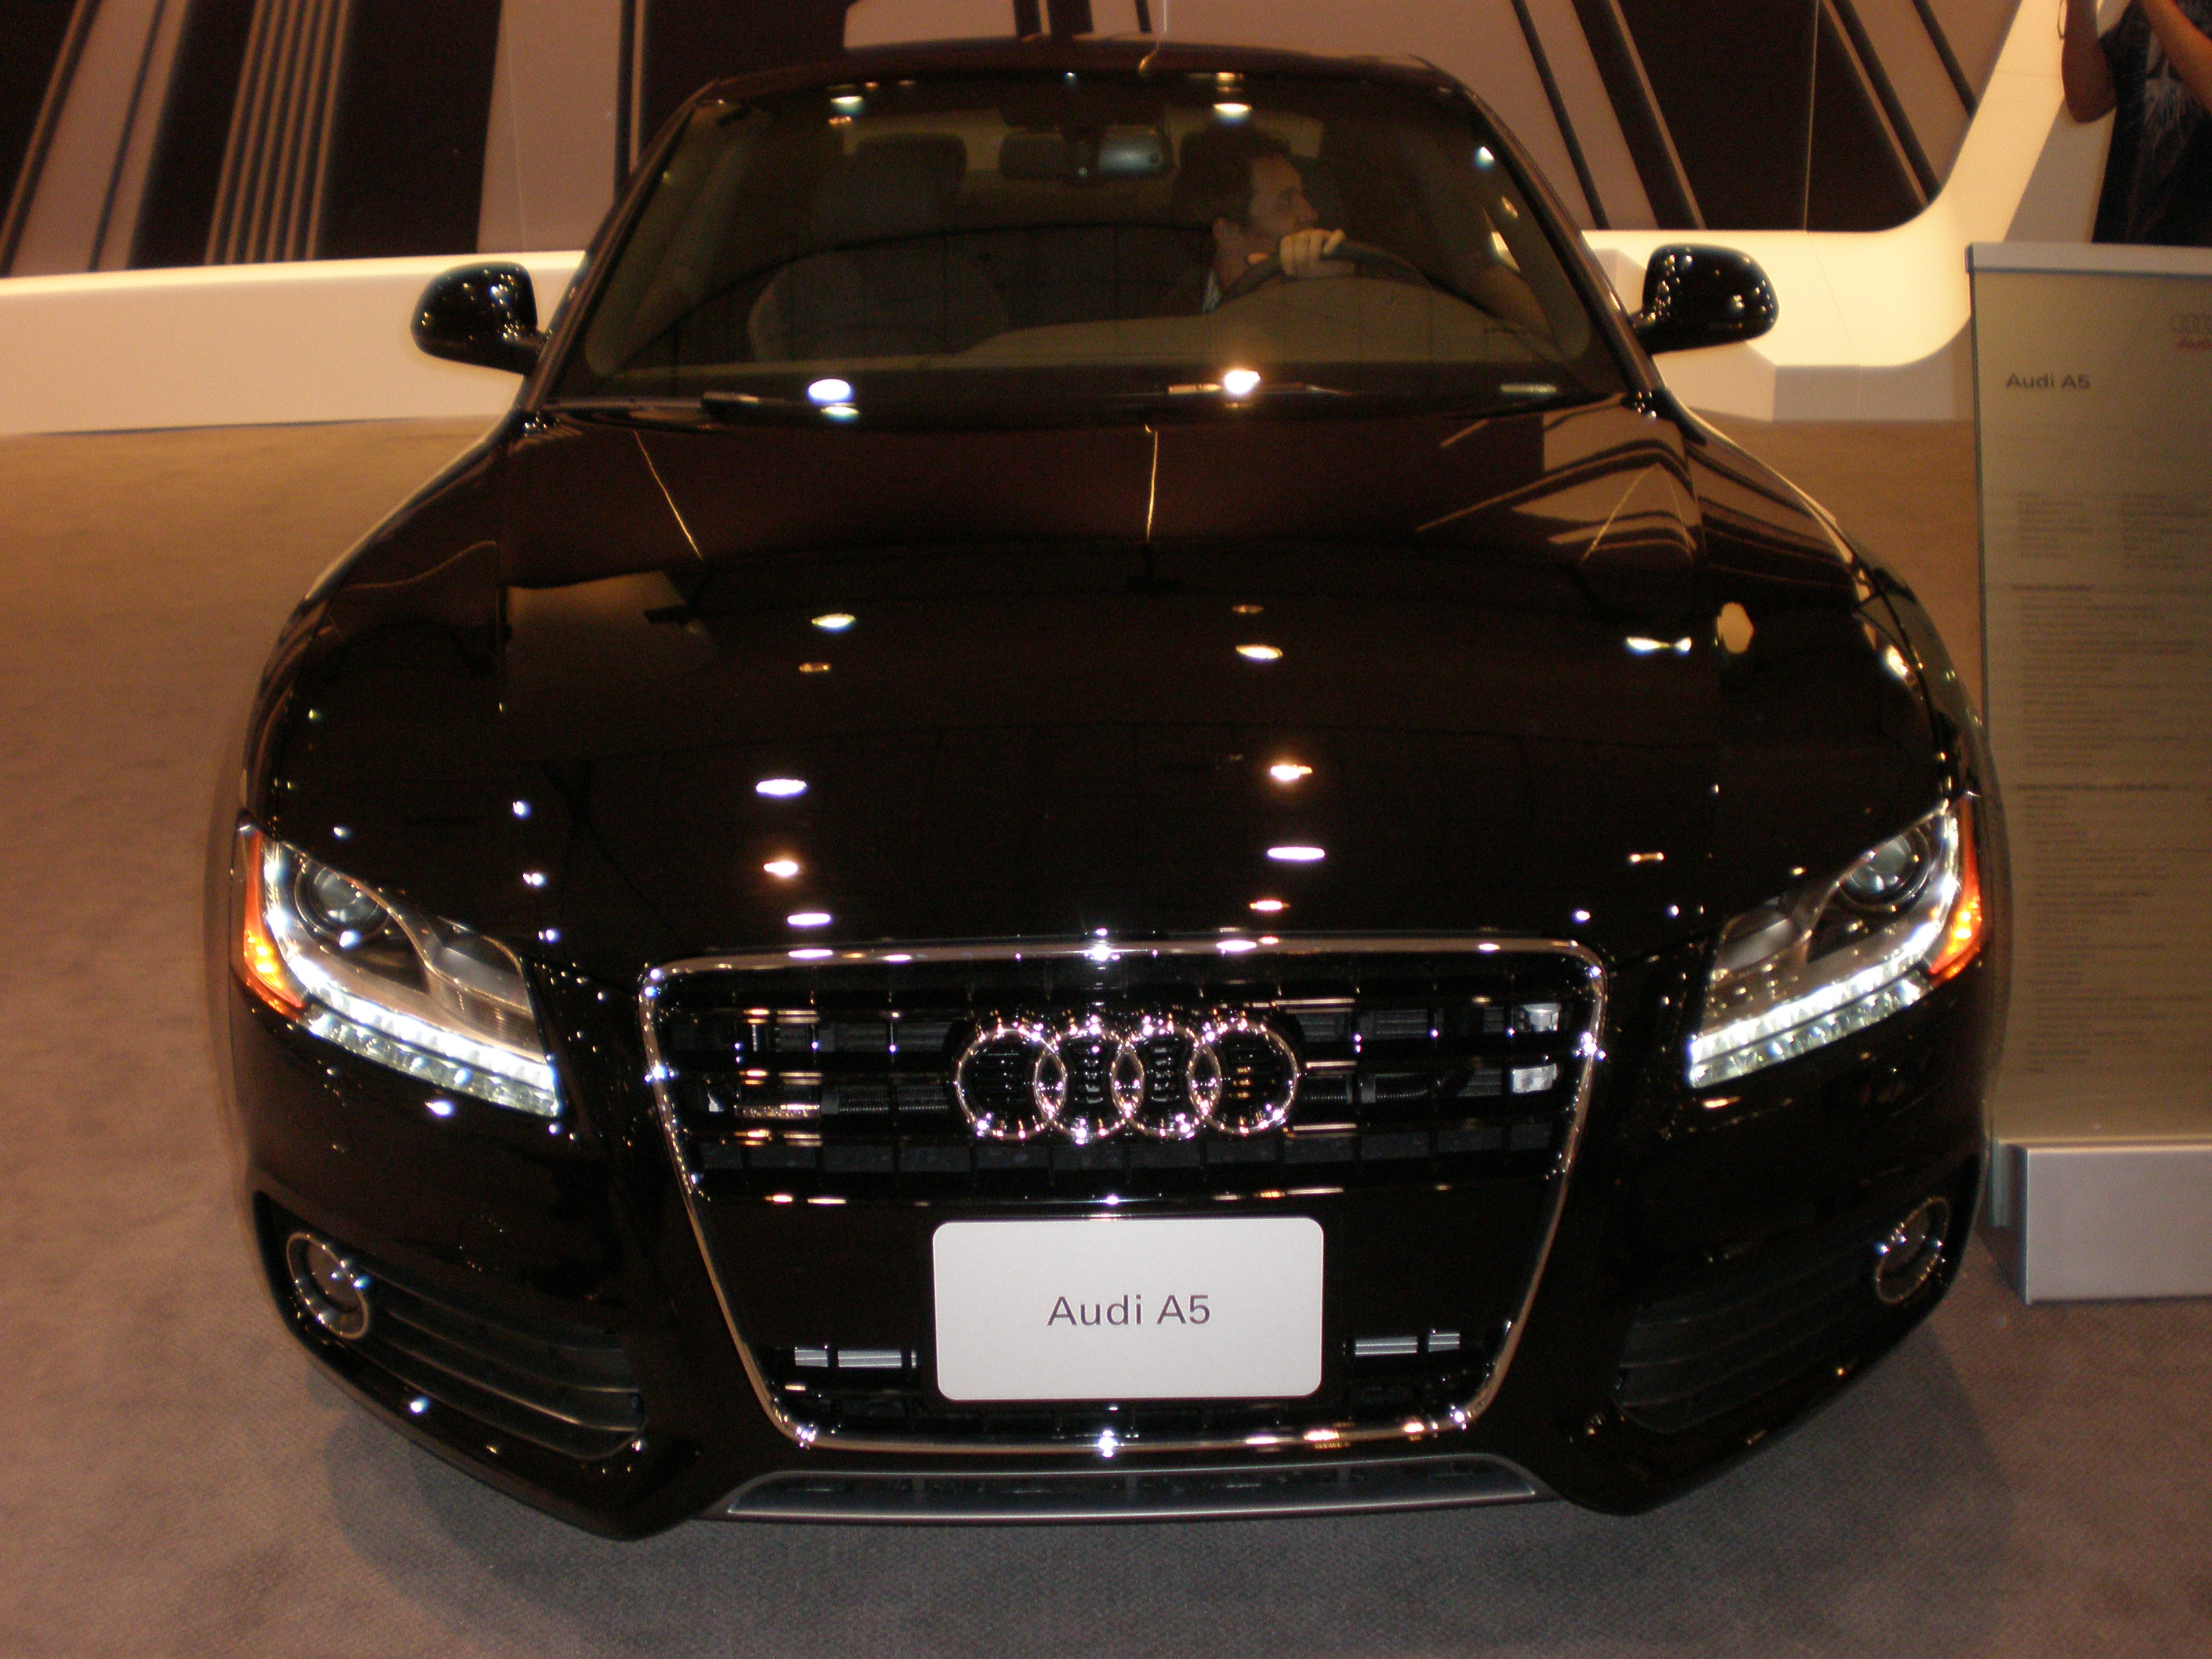 File Black Audi A FrontJPG Wikimedia Commons - Black audi